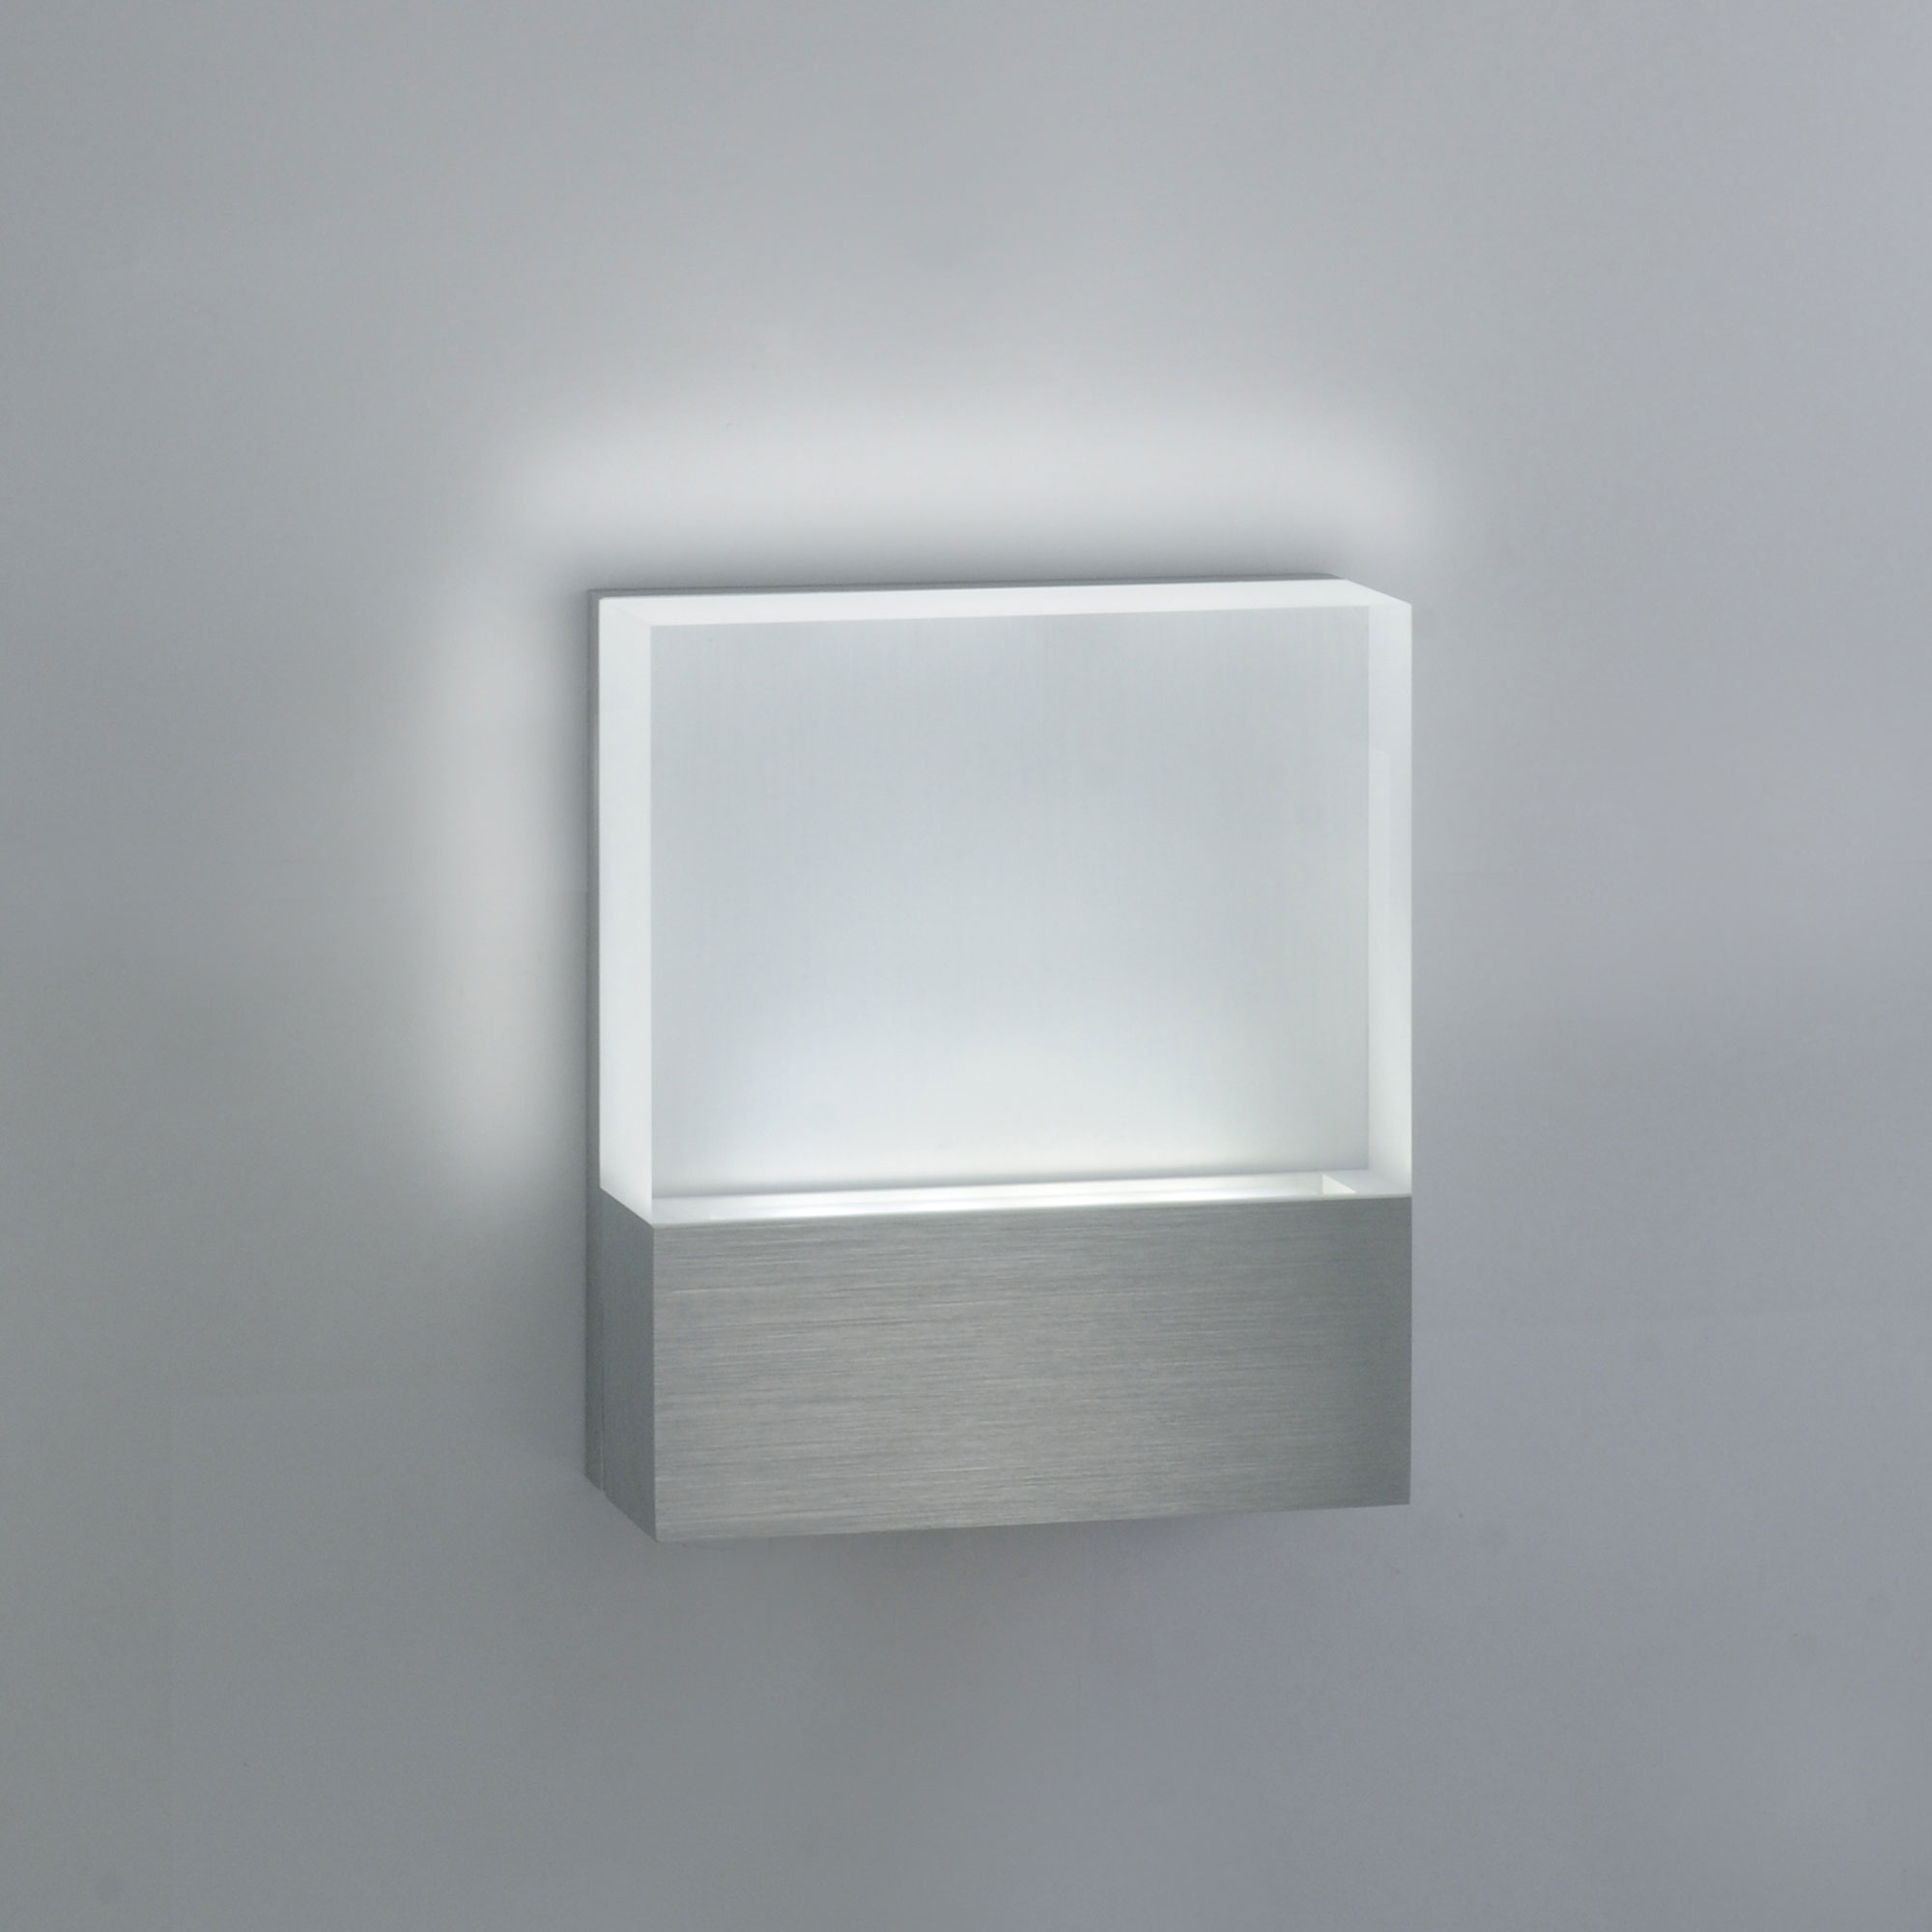 Led Wall Sconce Dimmable : TV LED ELV Dimmable Wall Sconce by Edge Lighting TV-W-L1-ELV-SA